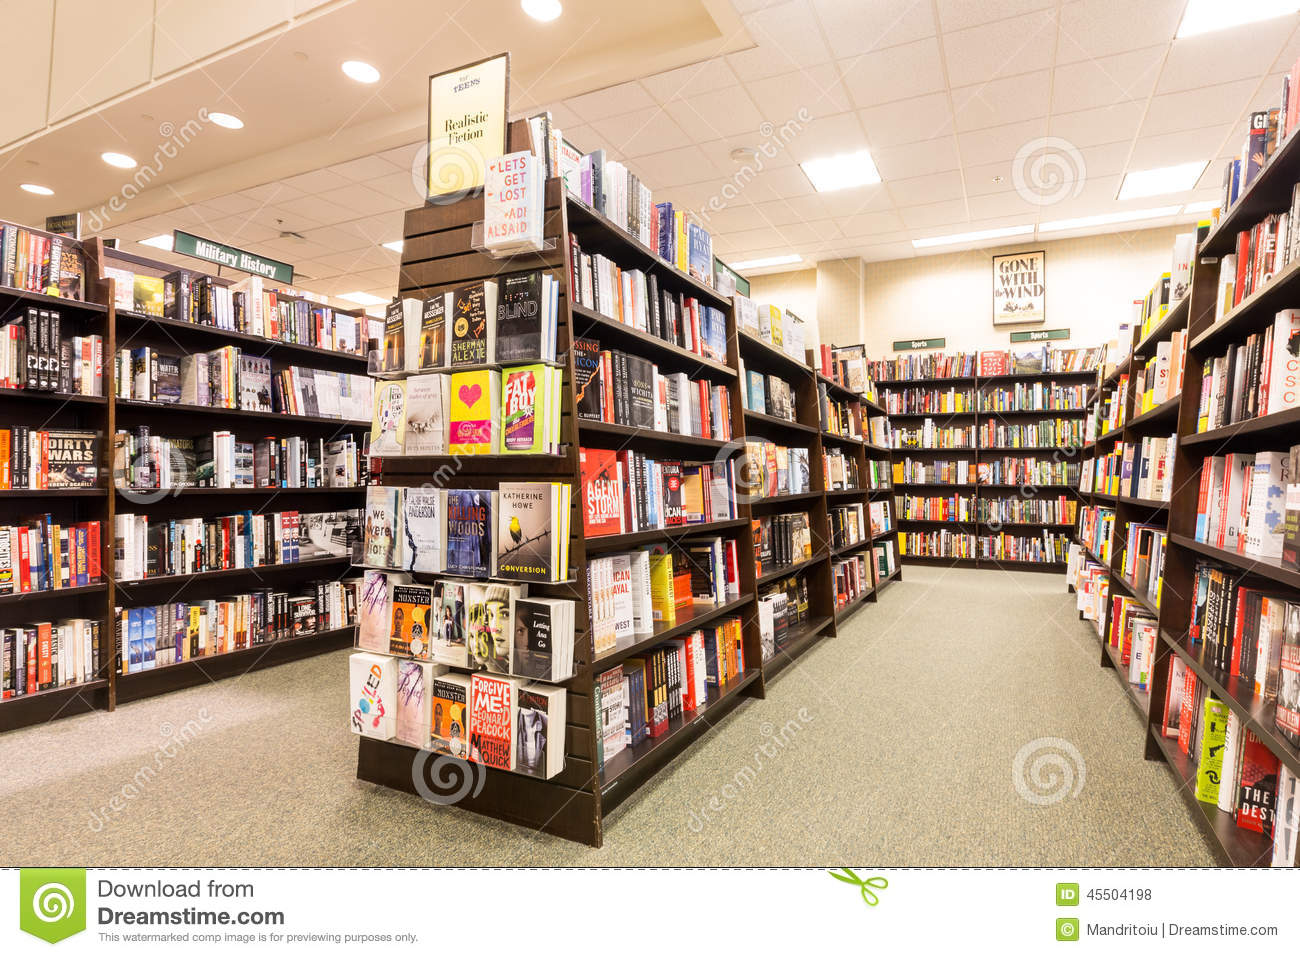 ... bookseller in USA and the last remaining national bookstore chain